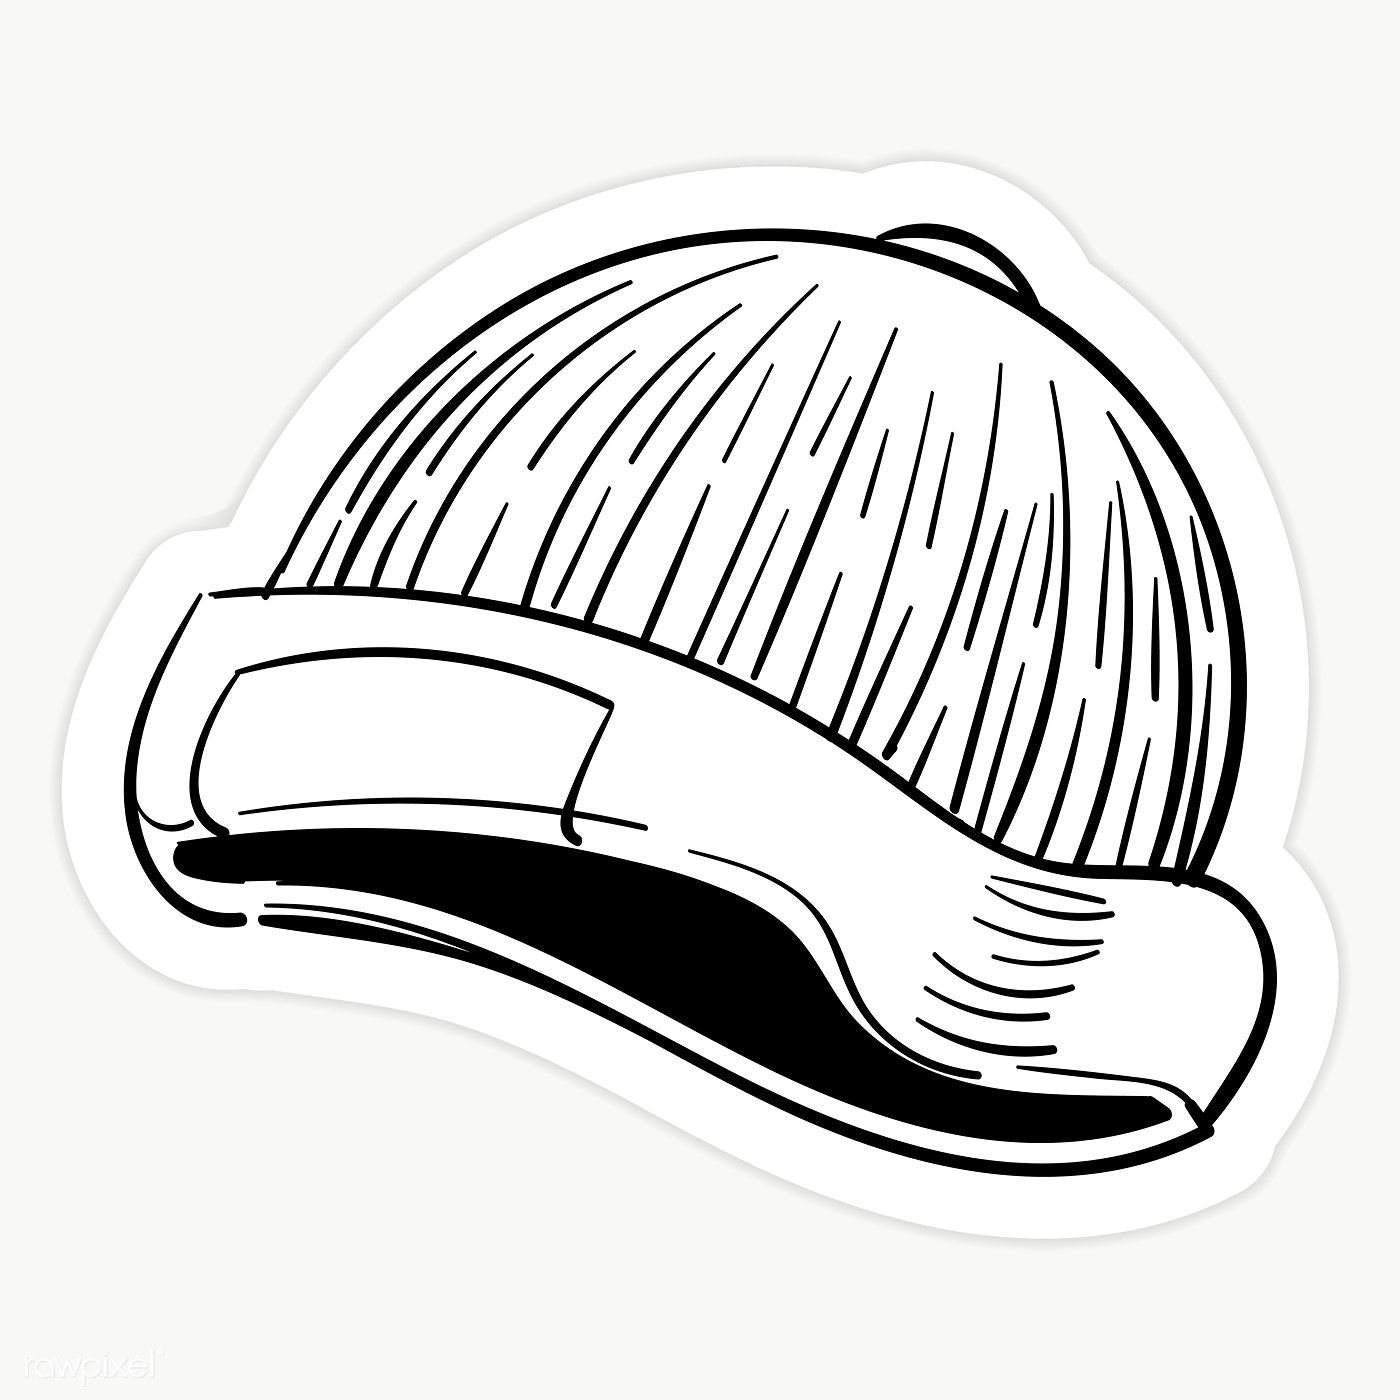 Black And White Yarn Hat Sticker Transparent Png Premium Image By Rawpixel Com Sasi Black And White Stickers Black And White Doodle Cloud Stickers